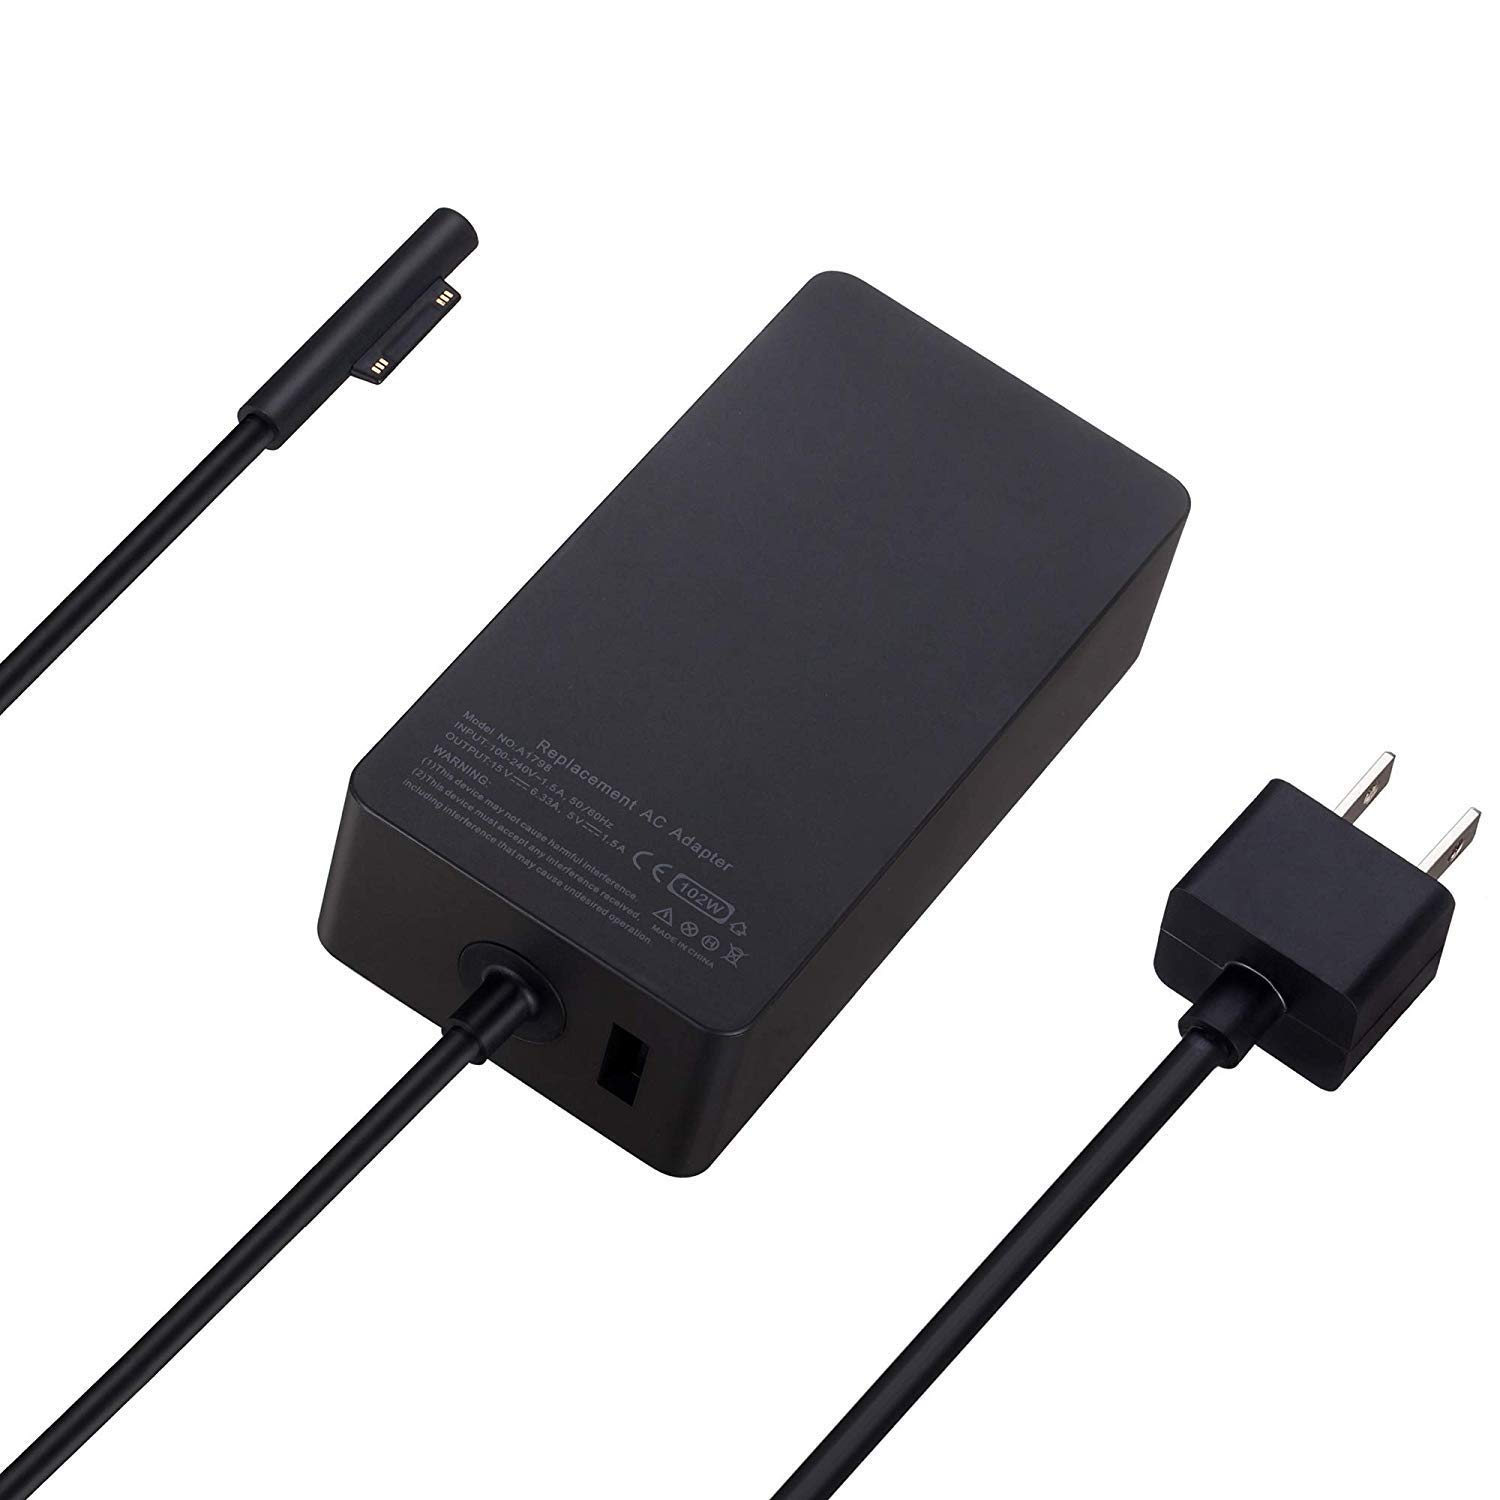 102W 15V 6.33A Power Adapter Charger for Microsoft Surface Laptop Surface Book 2 Surface Go Surface Pro 6 Pro 5 Pro 4 Pro 3 with Additional USB Port and 6ft Power Cord by E EGOWAY (Image #3)